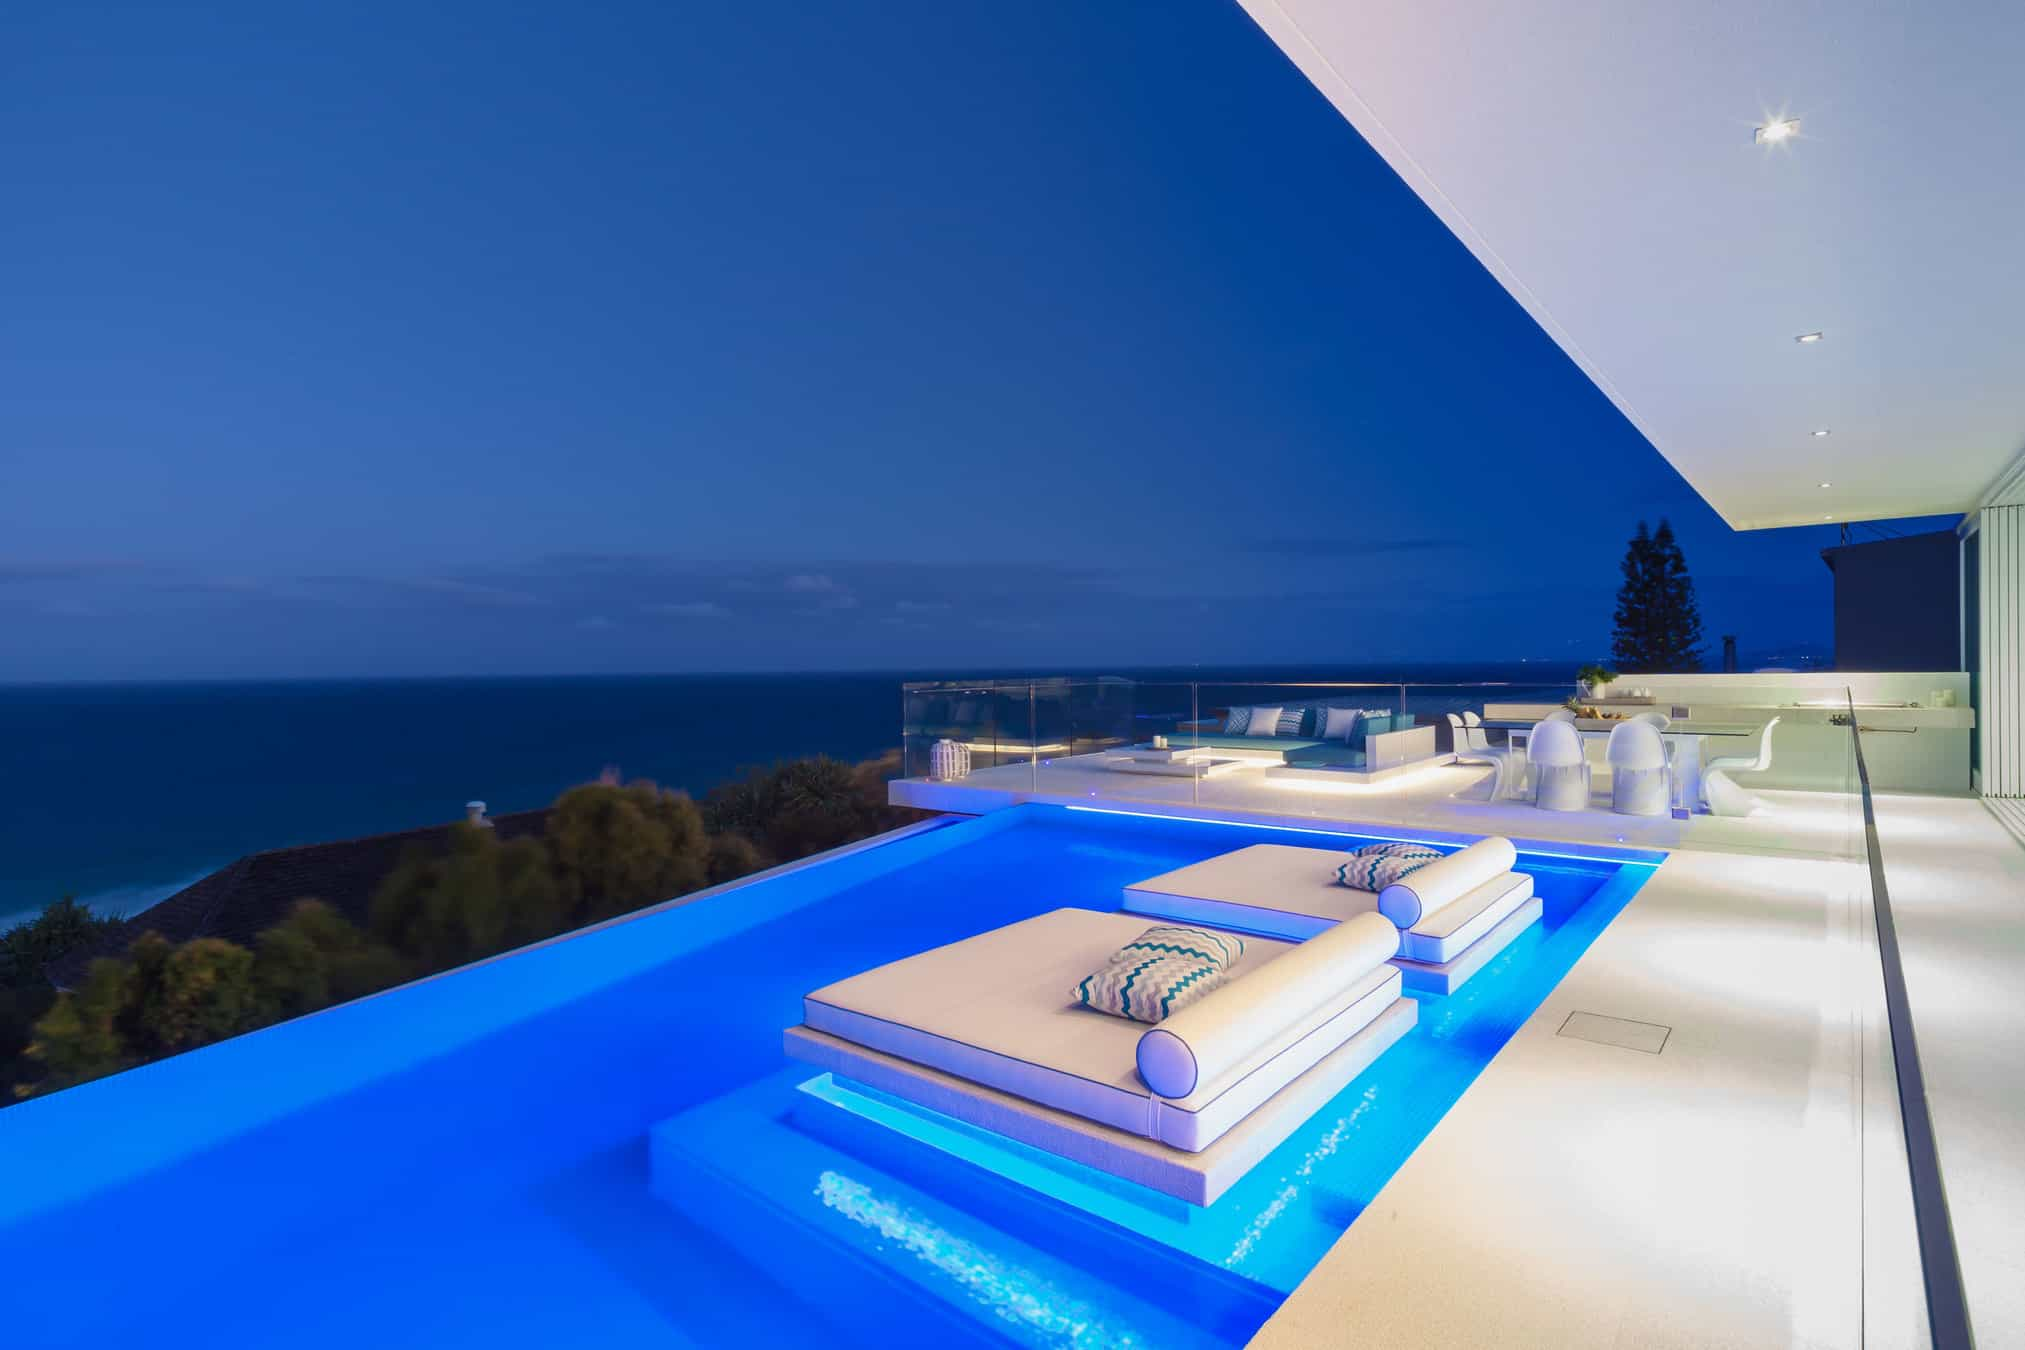 Azure house chris clout design for Domestic swimming pool design